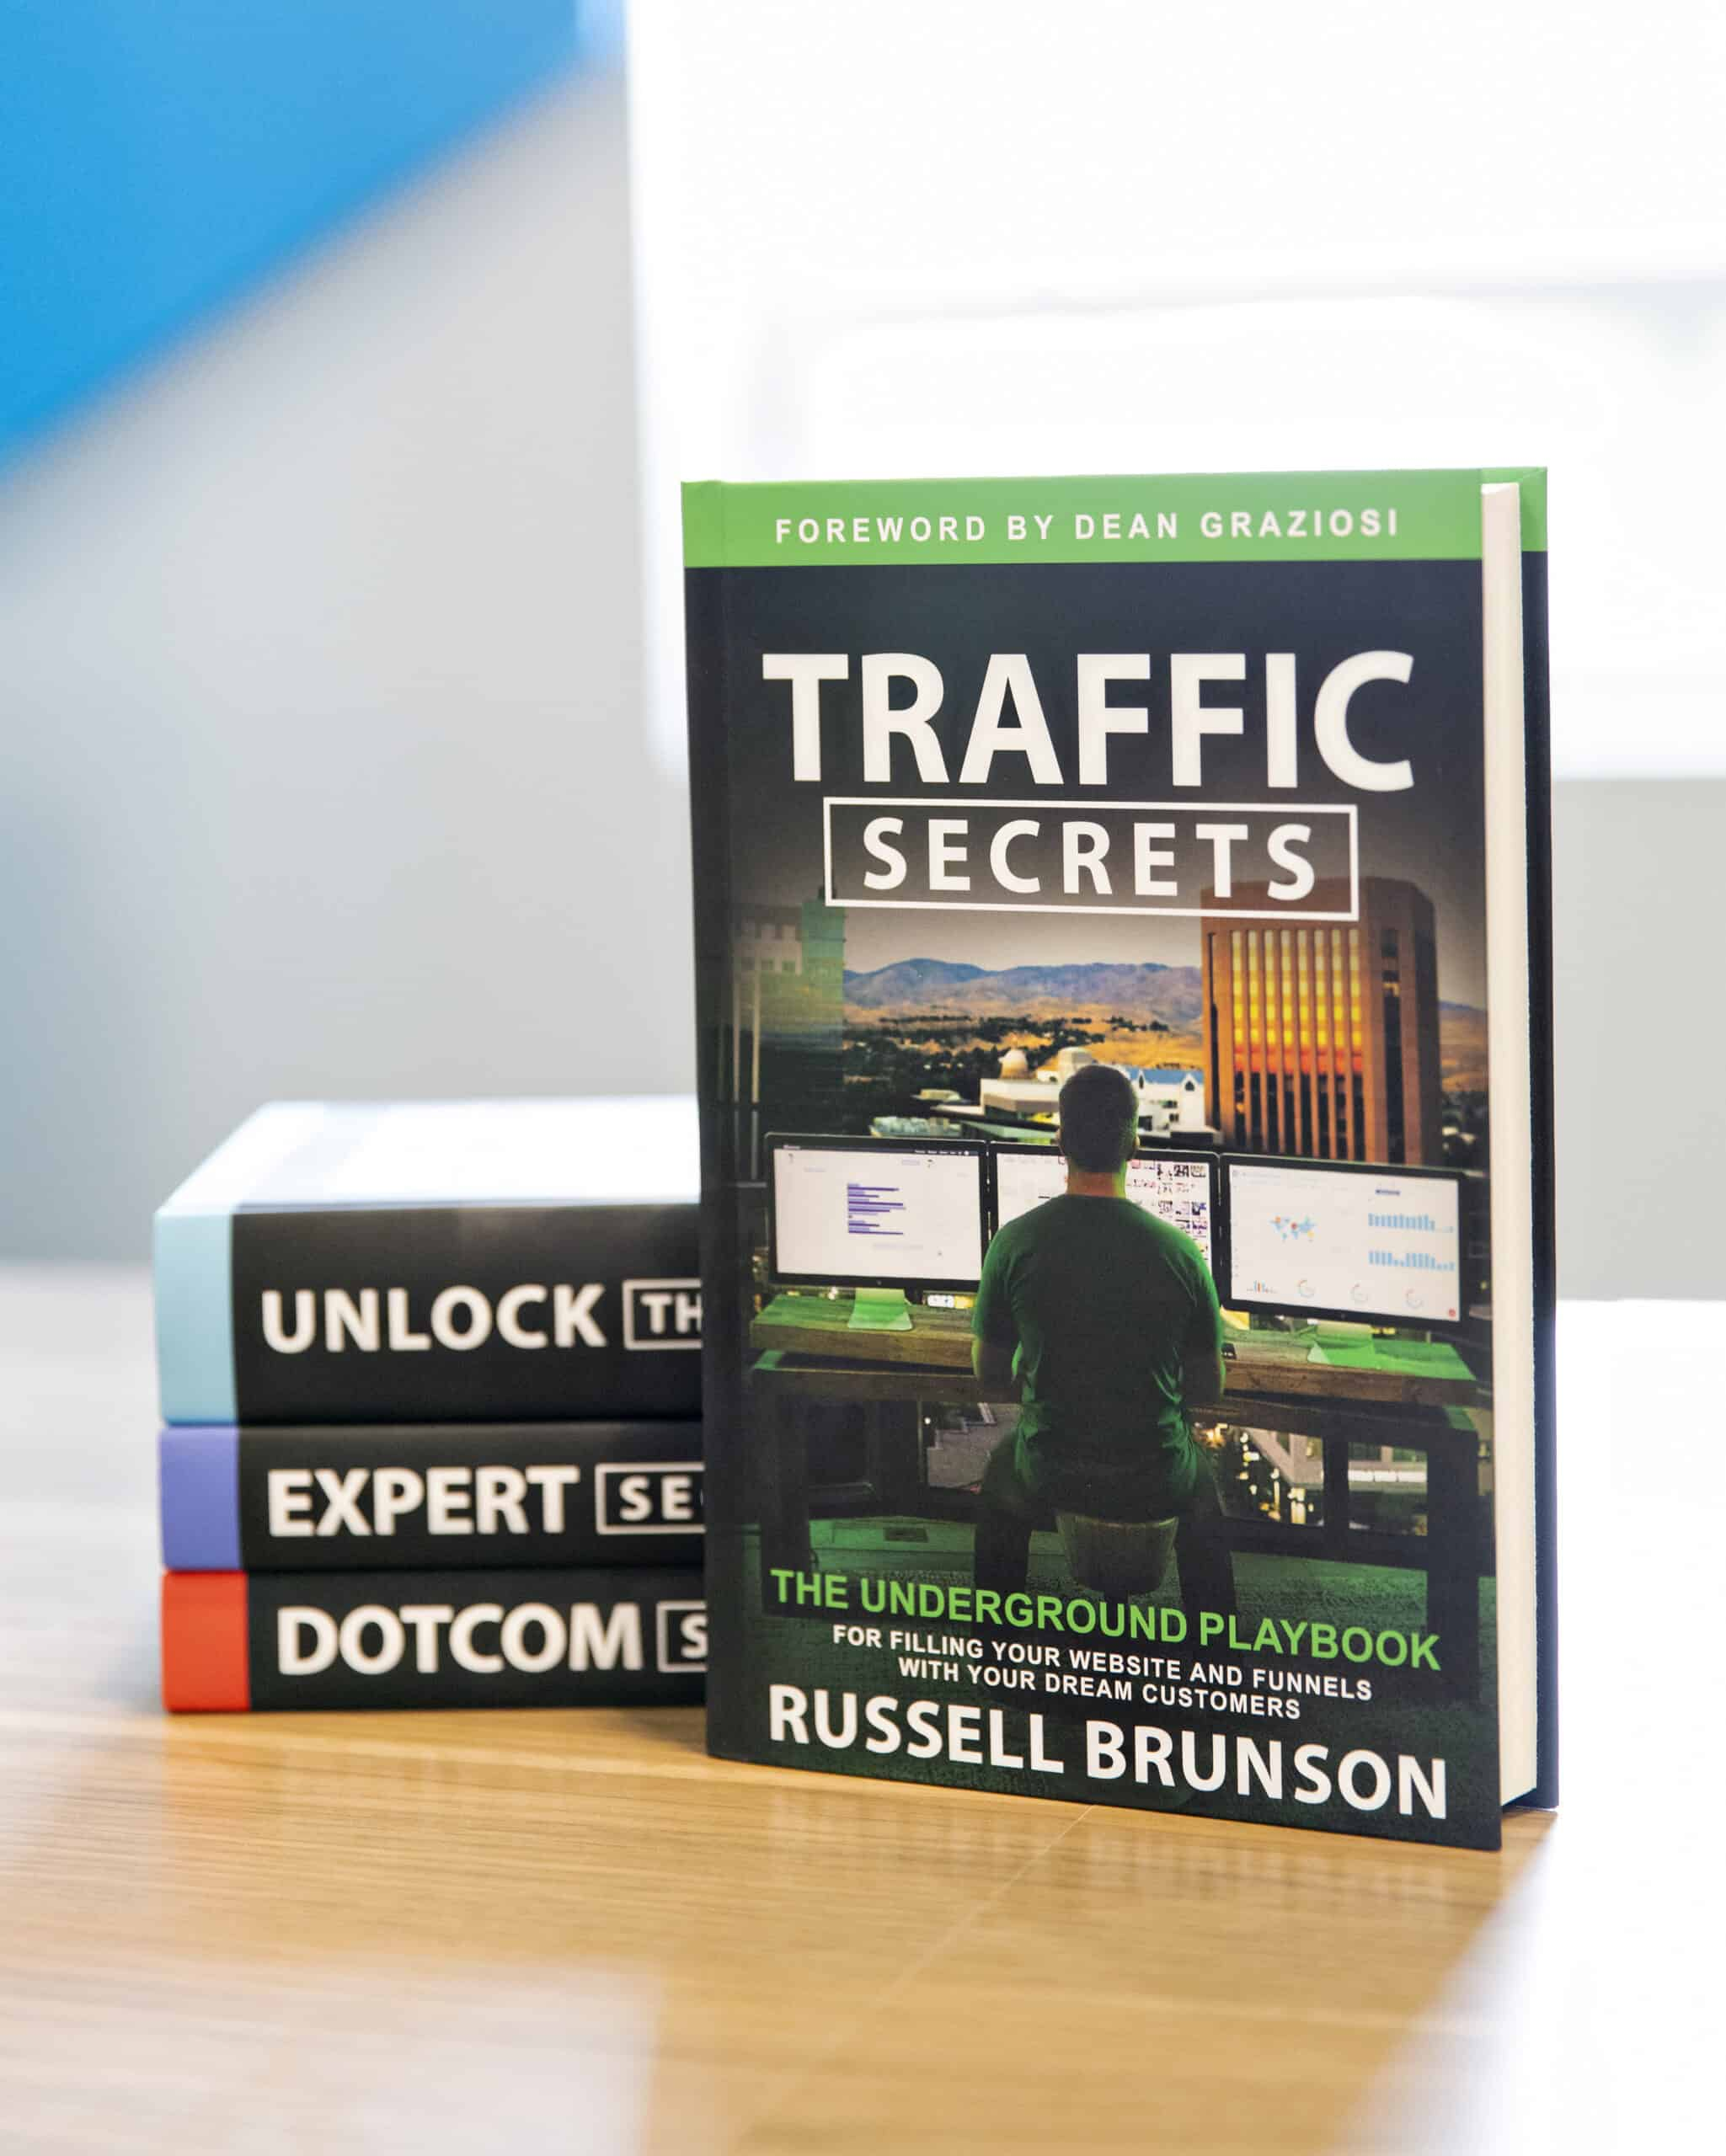 #AD Are you struggling to get traffic to your website? If so, you need to learn more about the 30-Day Traffic Secrets challenge HERE. #TrafficSecrets #RussellBrunson #SharingLifesMoments